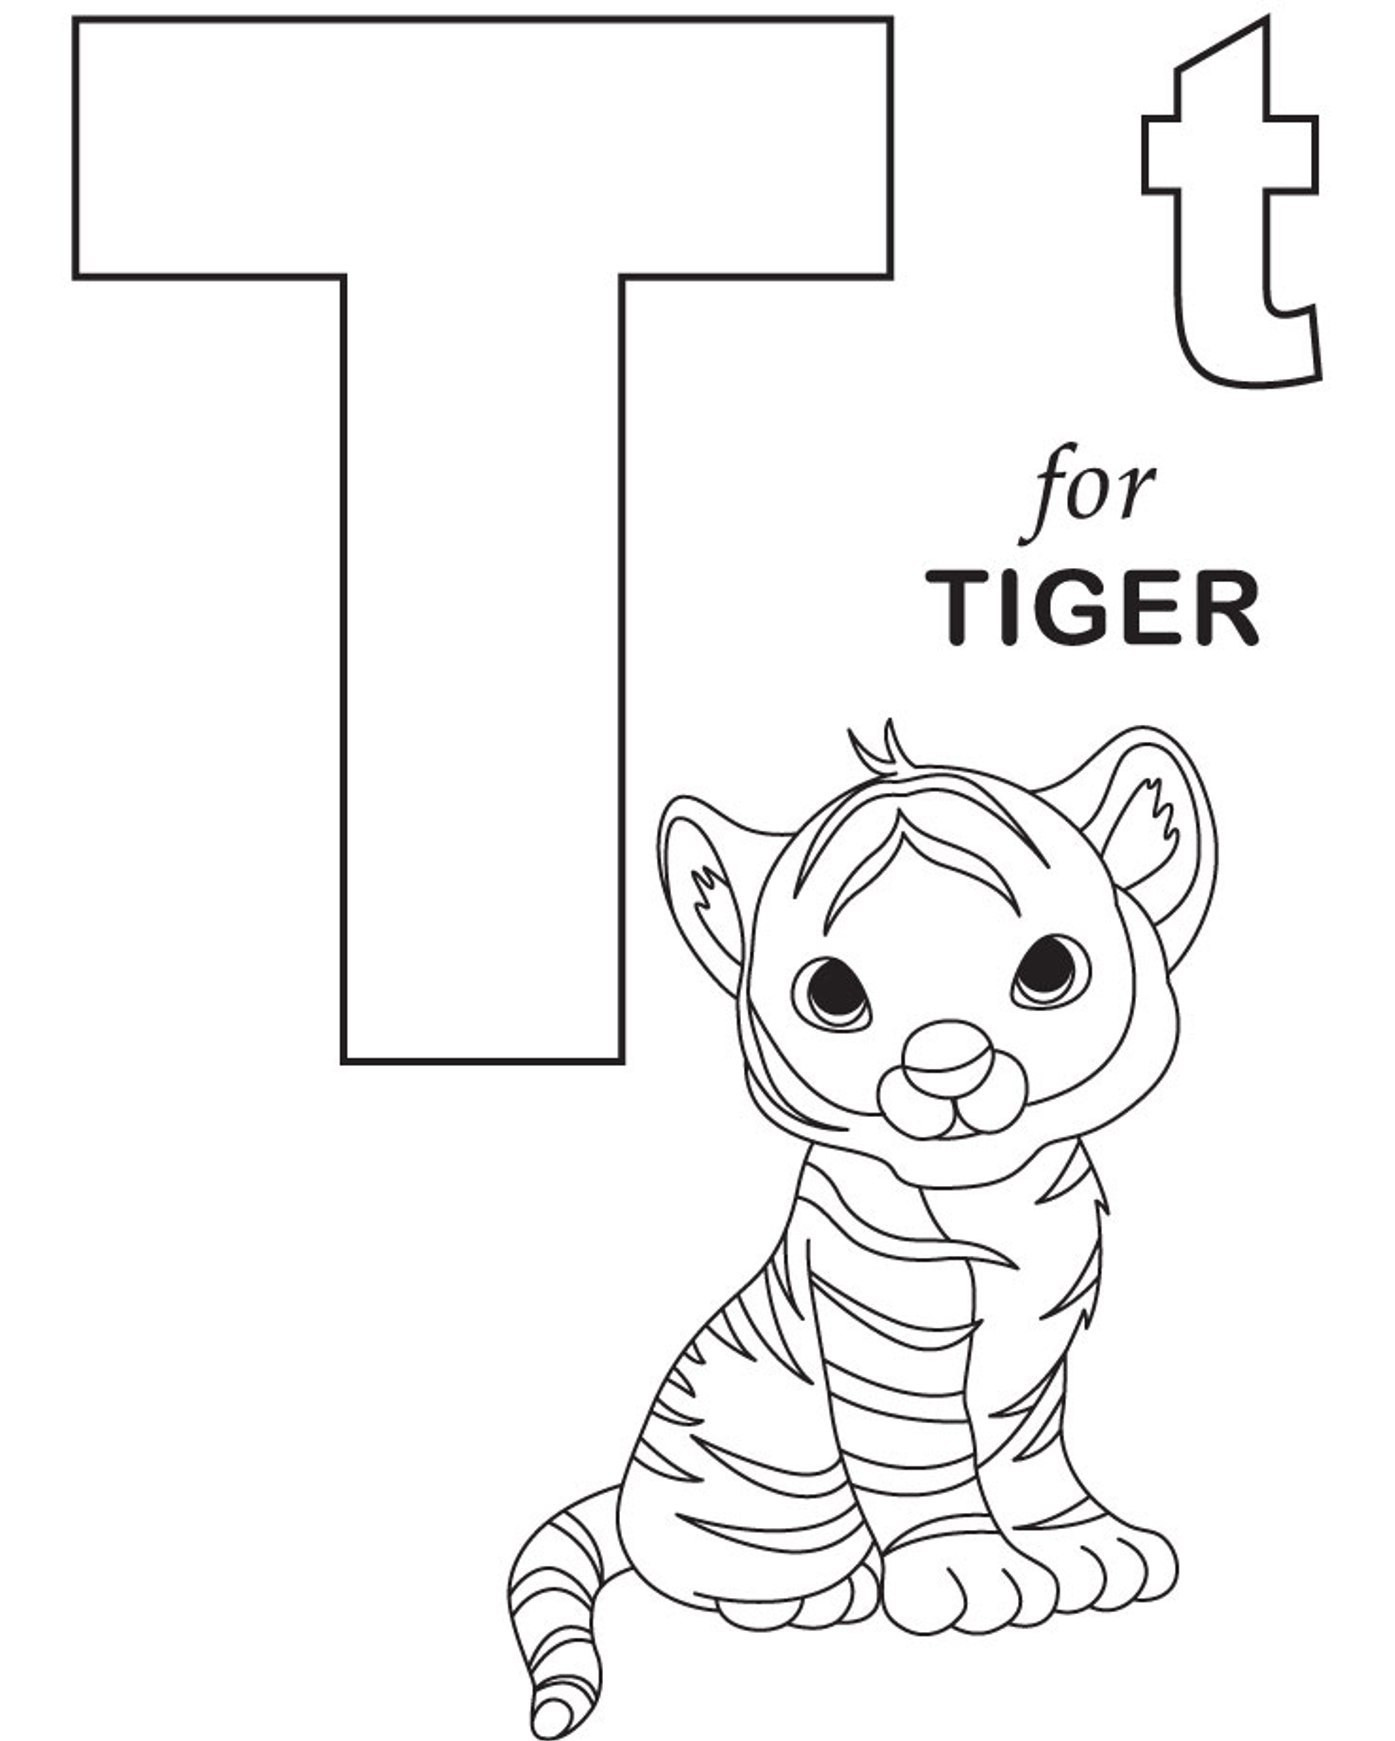 T Coloring Pages For Kids  Tiger Coloring Pages coloringsuite